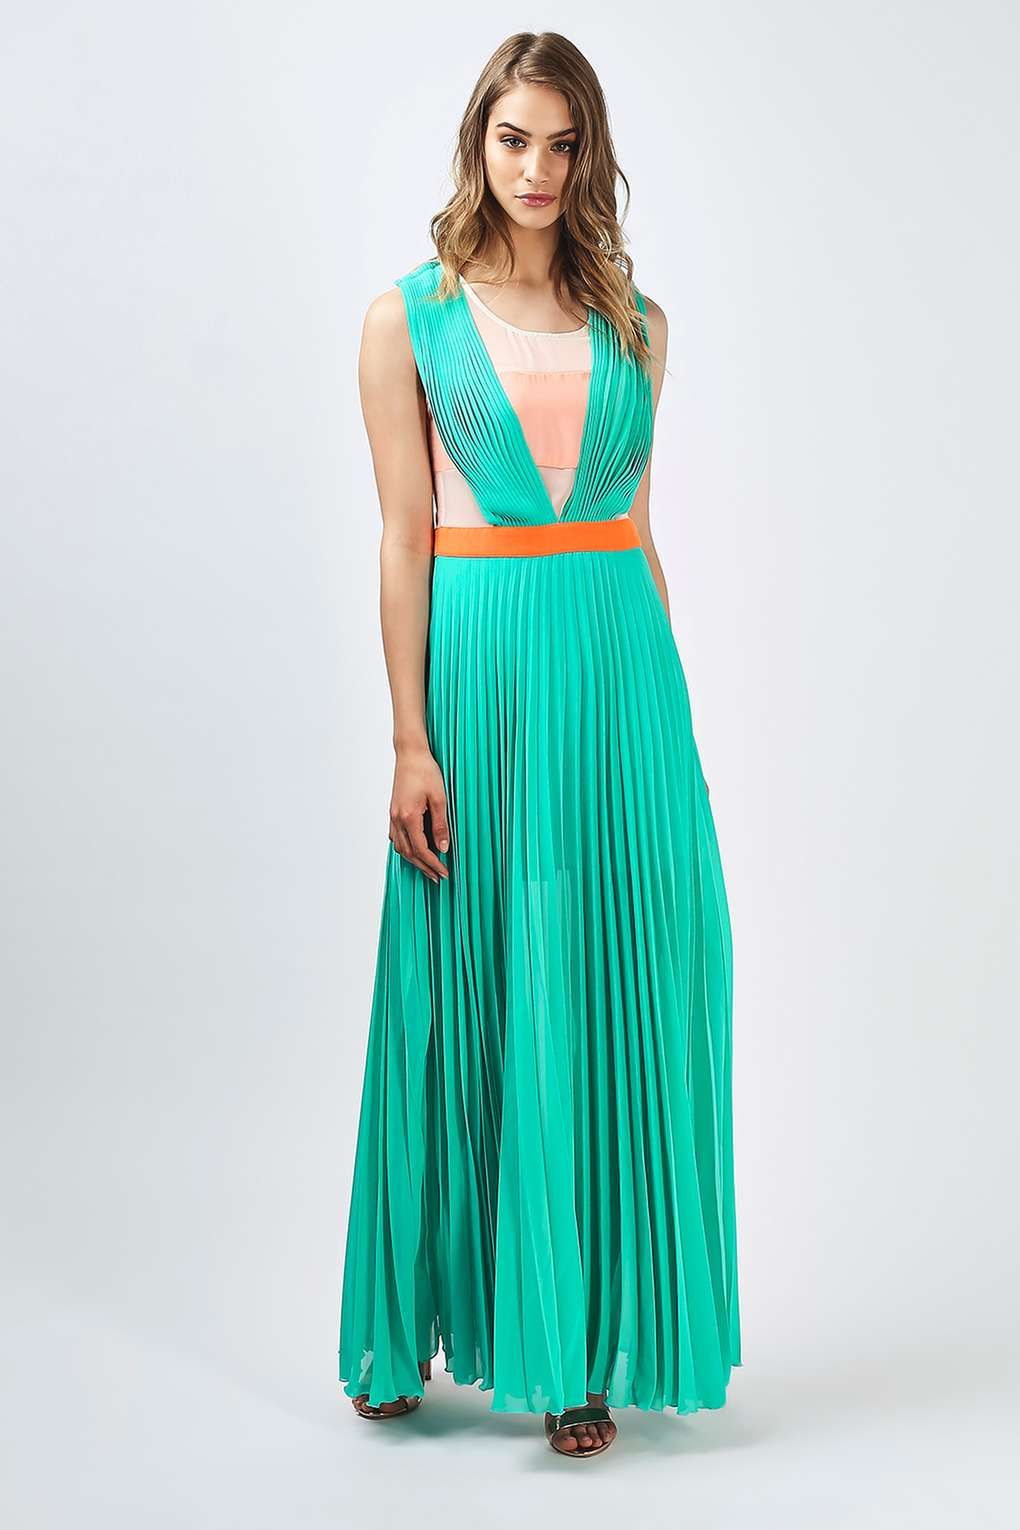 9cb165d3d24 Neon Town Pleated Maxi Dress by Jovonna - Brands